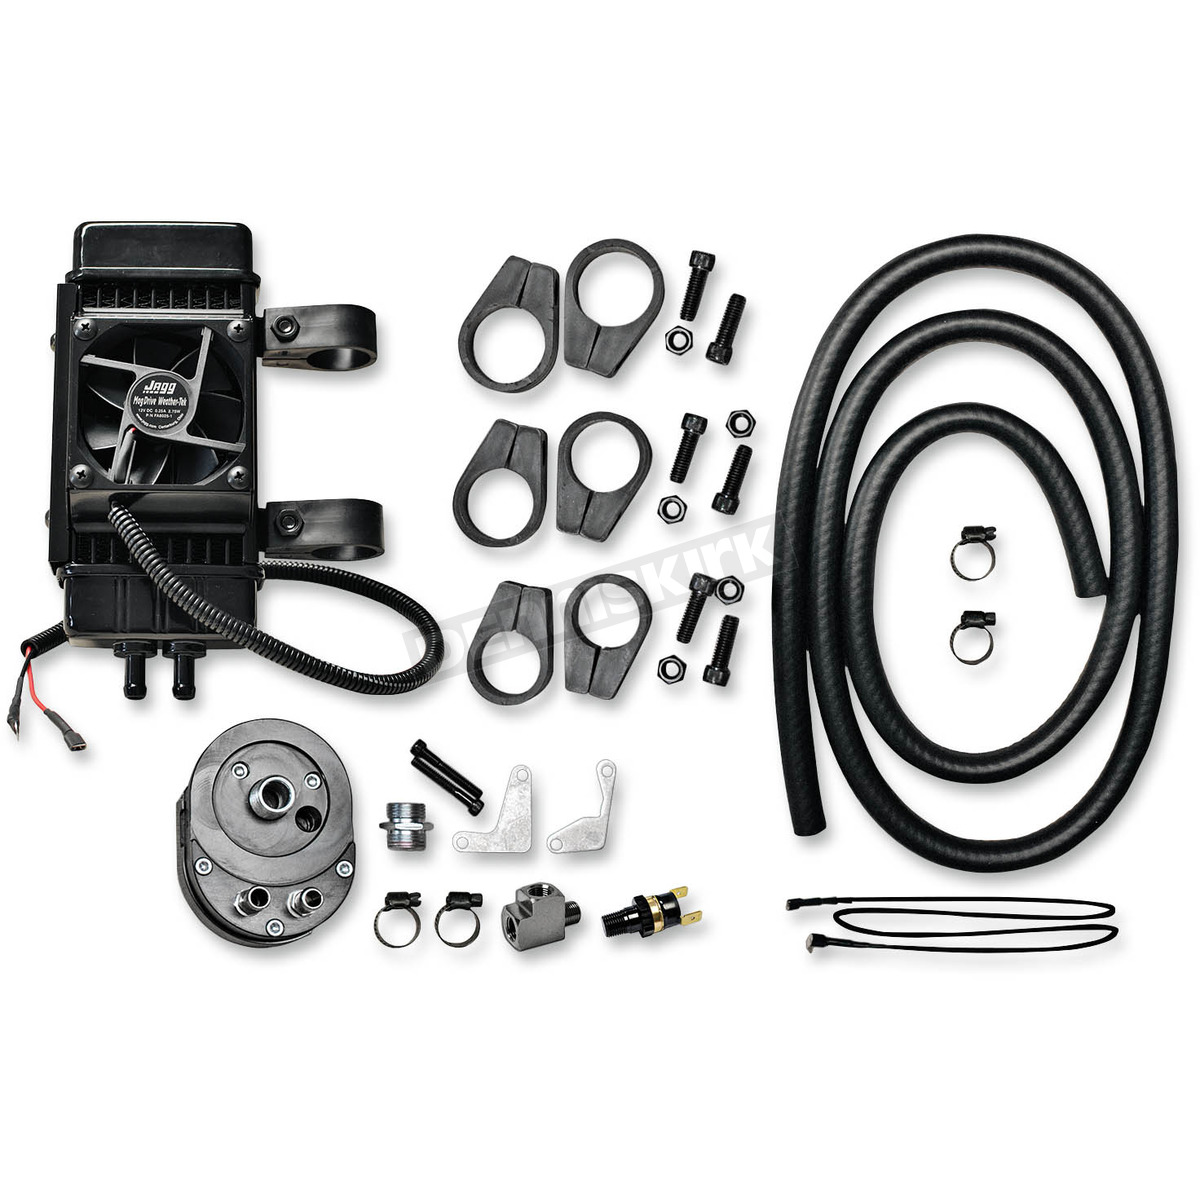 Jagg Vertical Frame Mount Fan Assisted Oil Cooler Kit